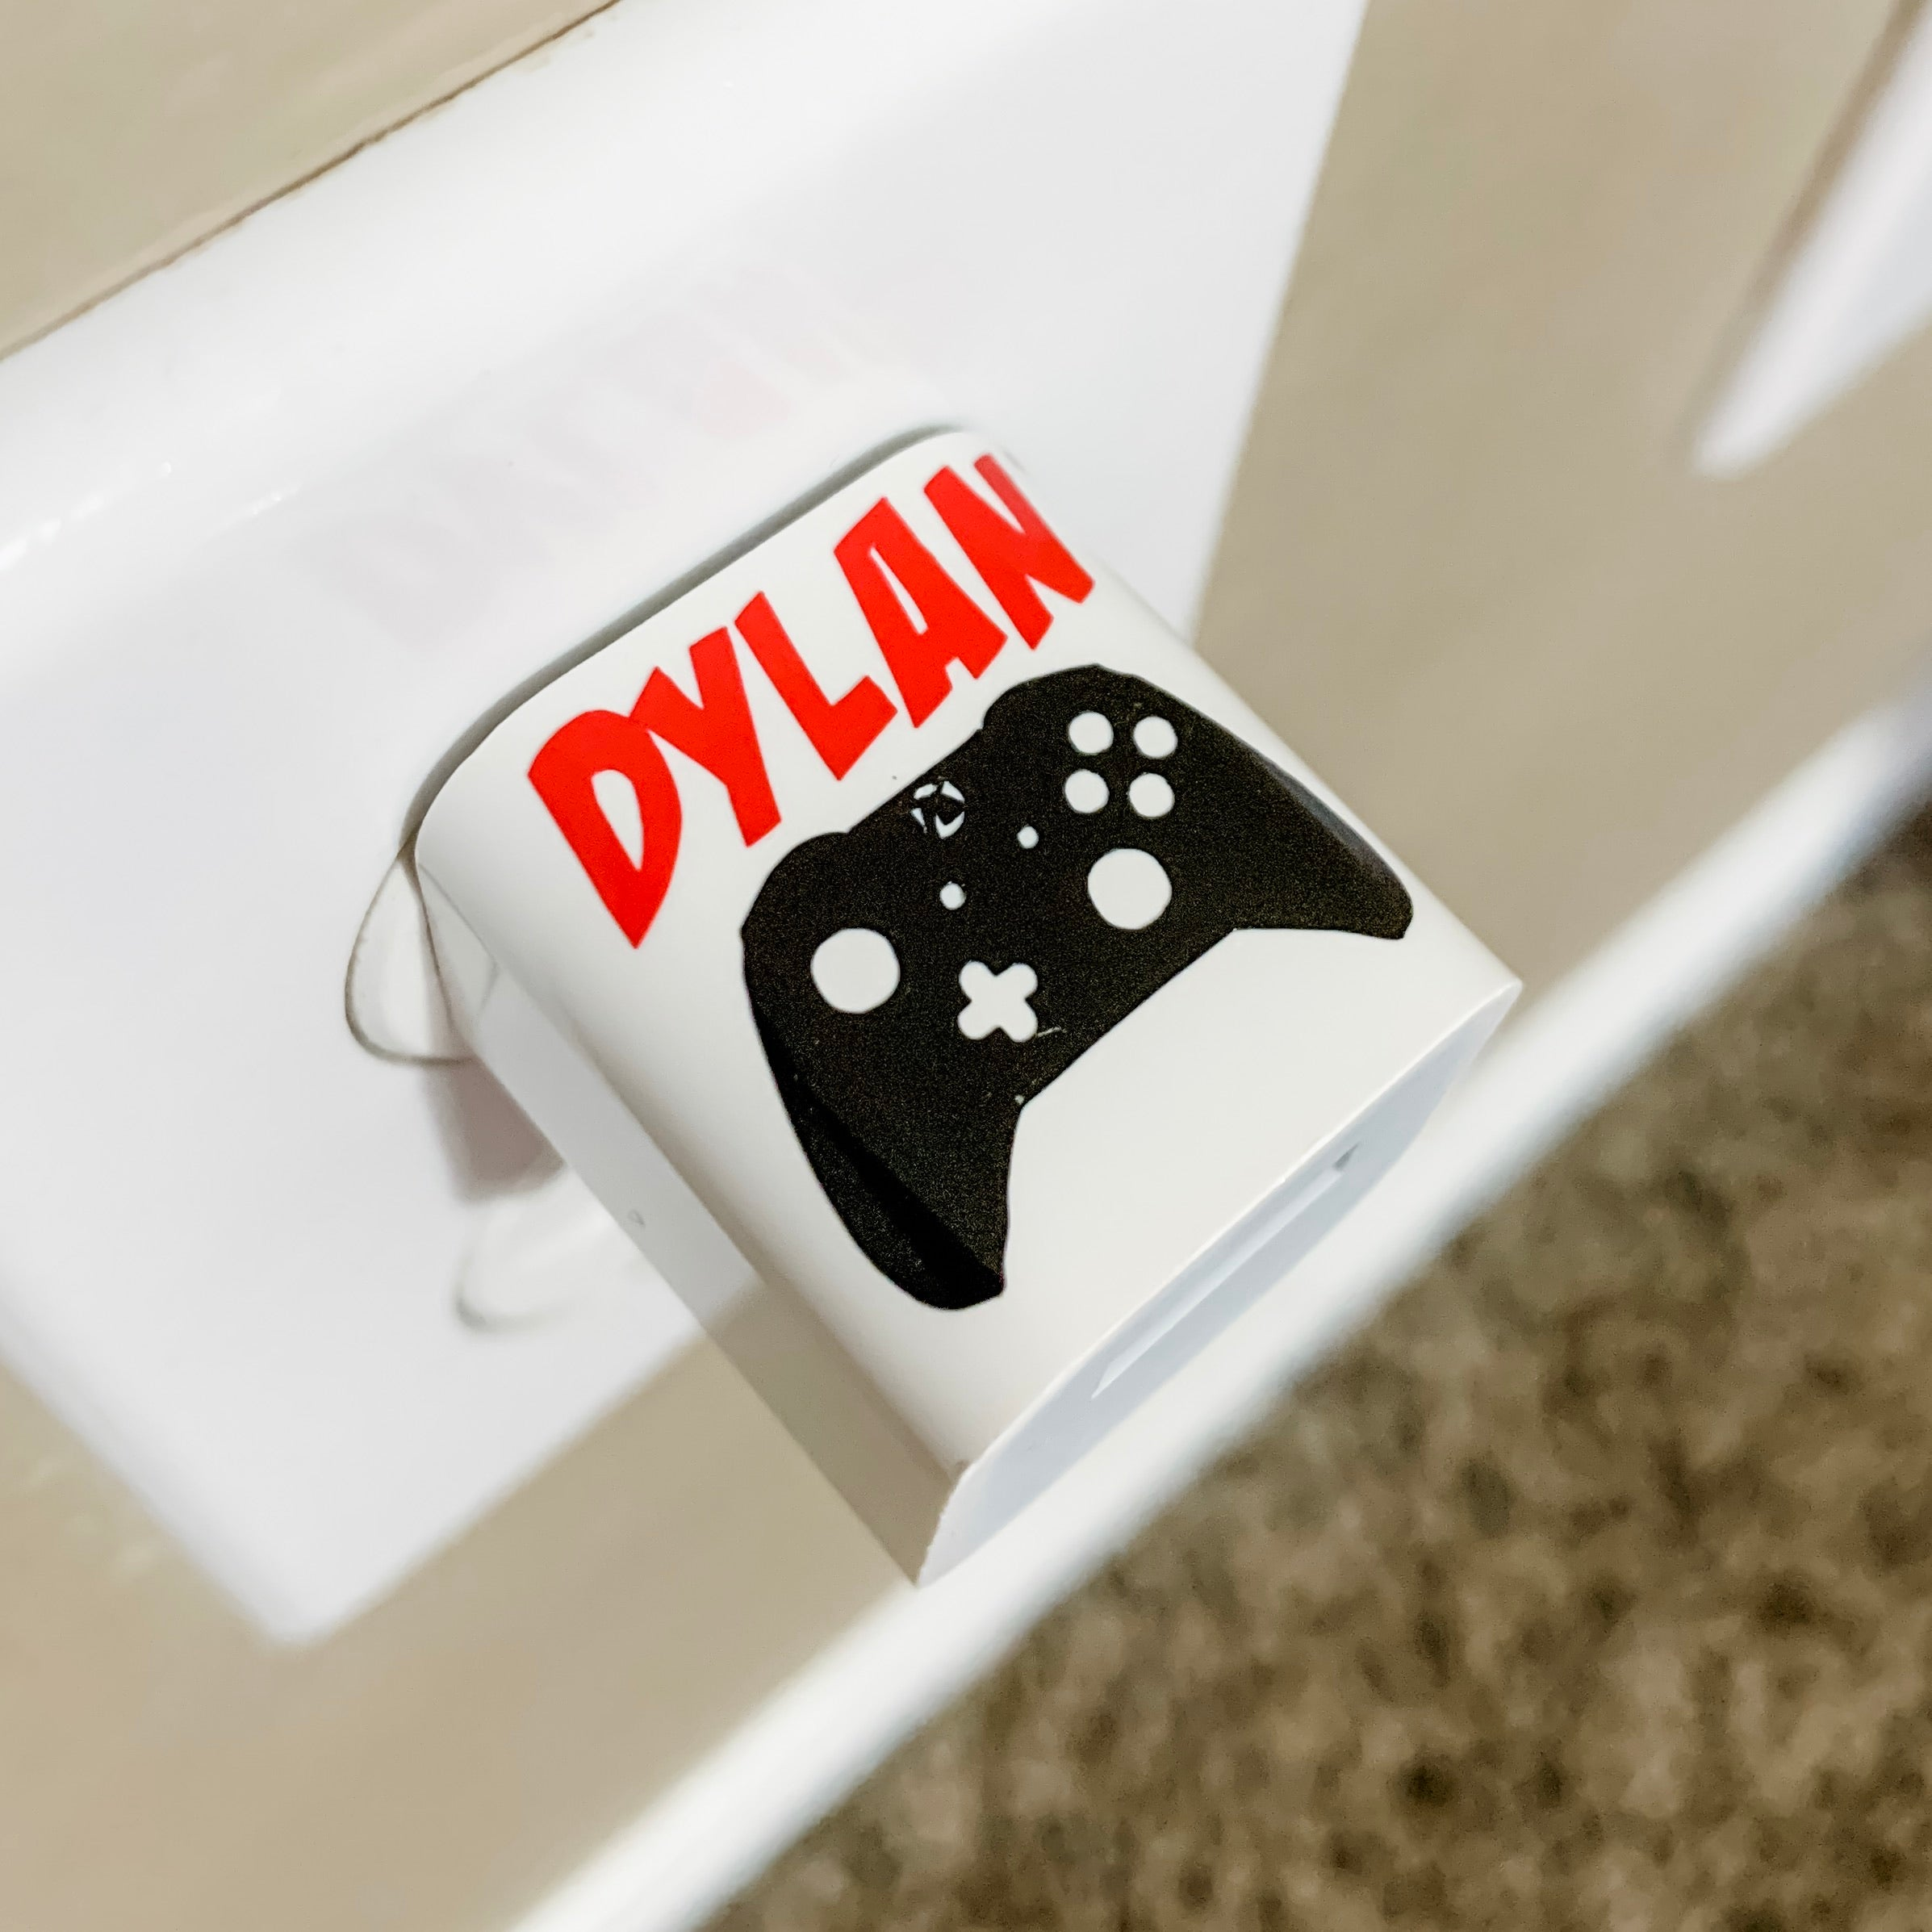 X-Box Controller Personalized USB Wall Charger